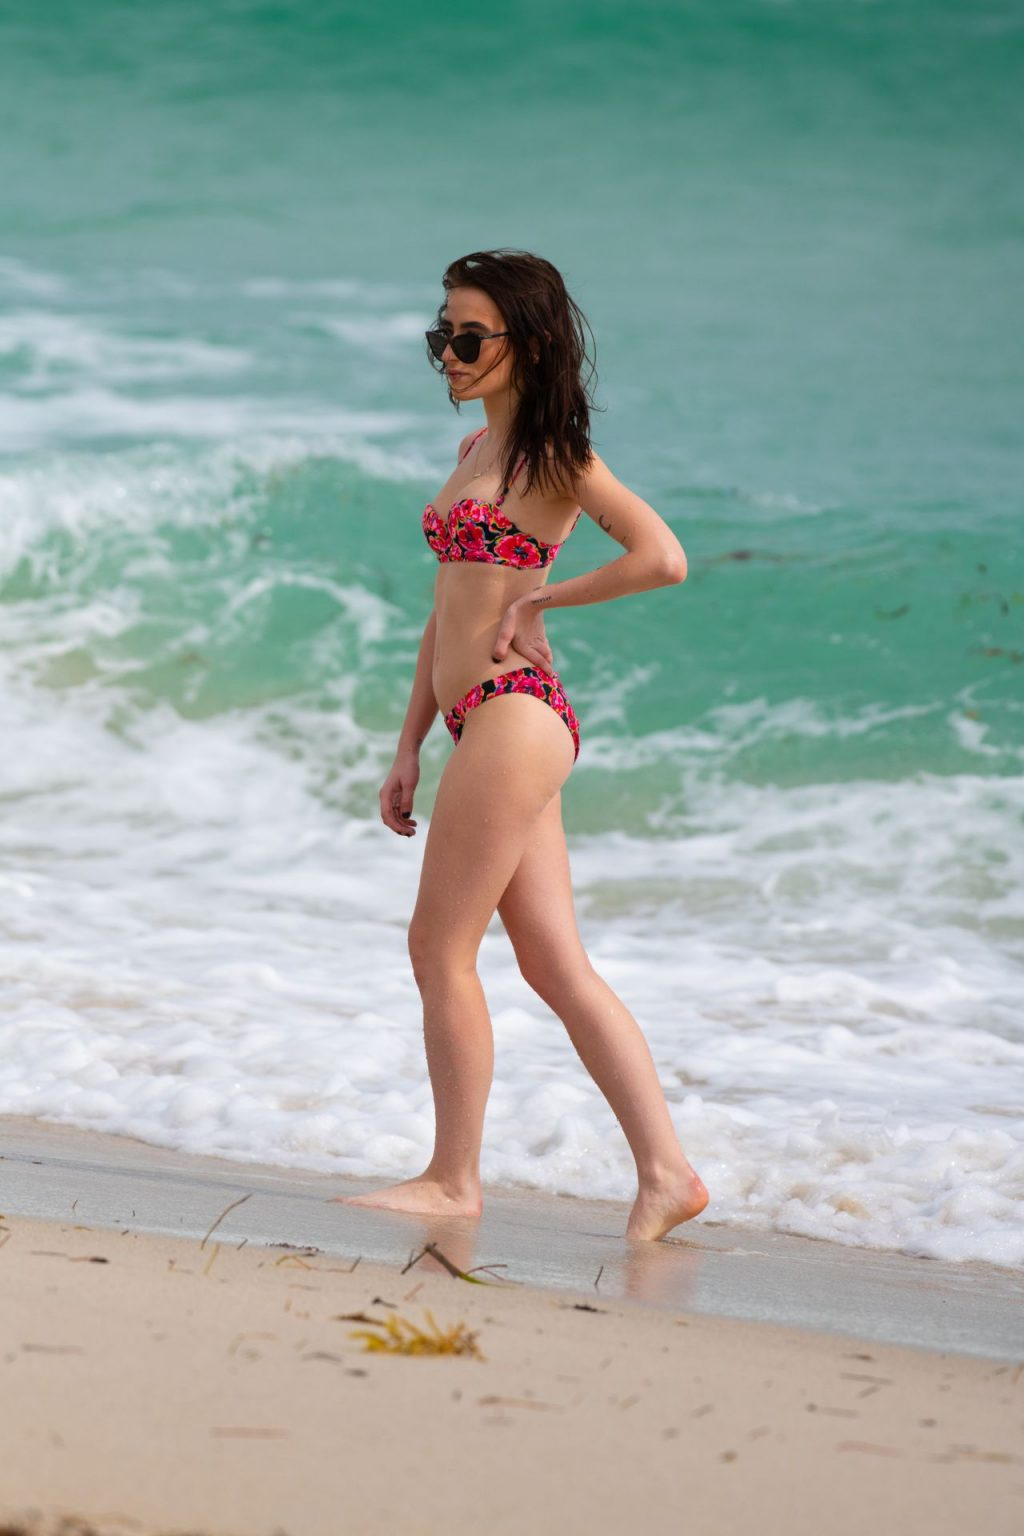 Urszula Makowska is Seen in Miami Beach (24 Sexy Photos)